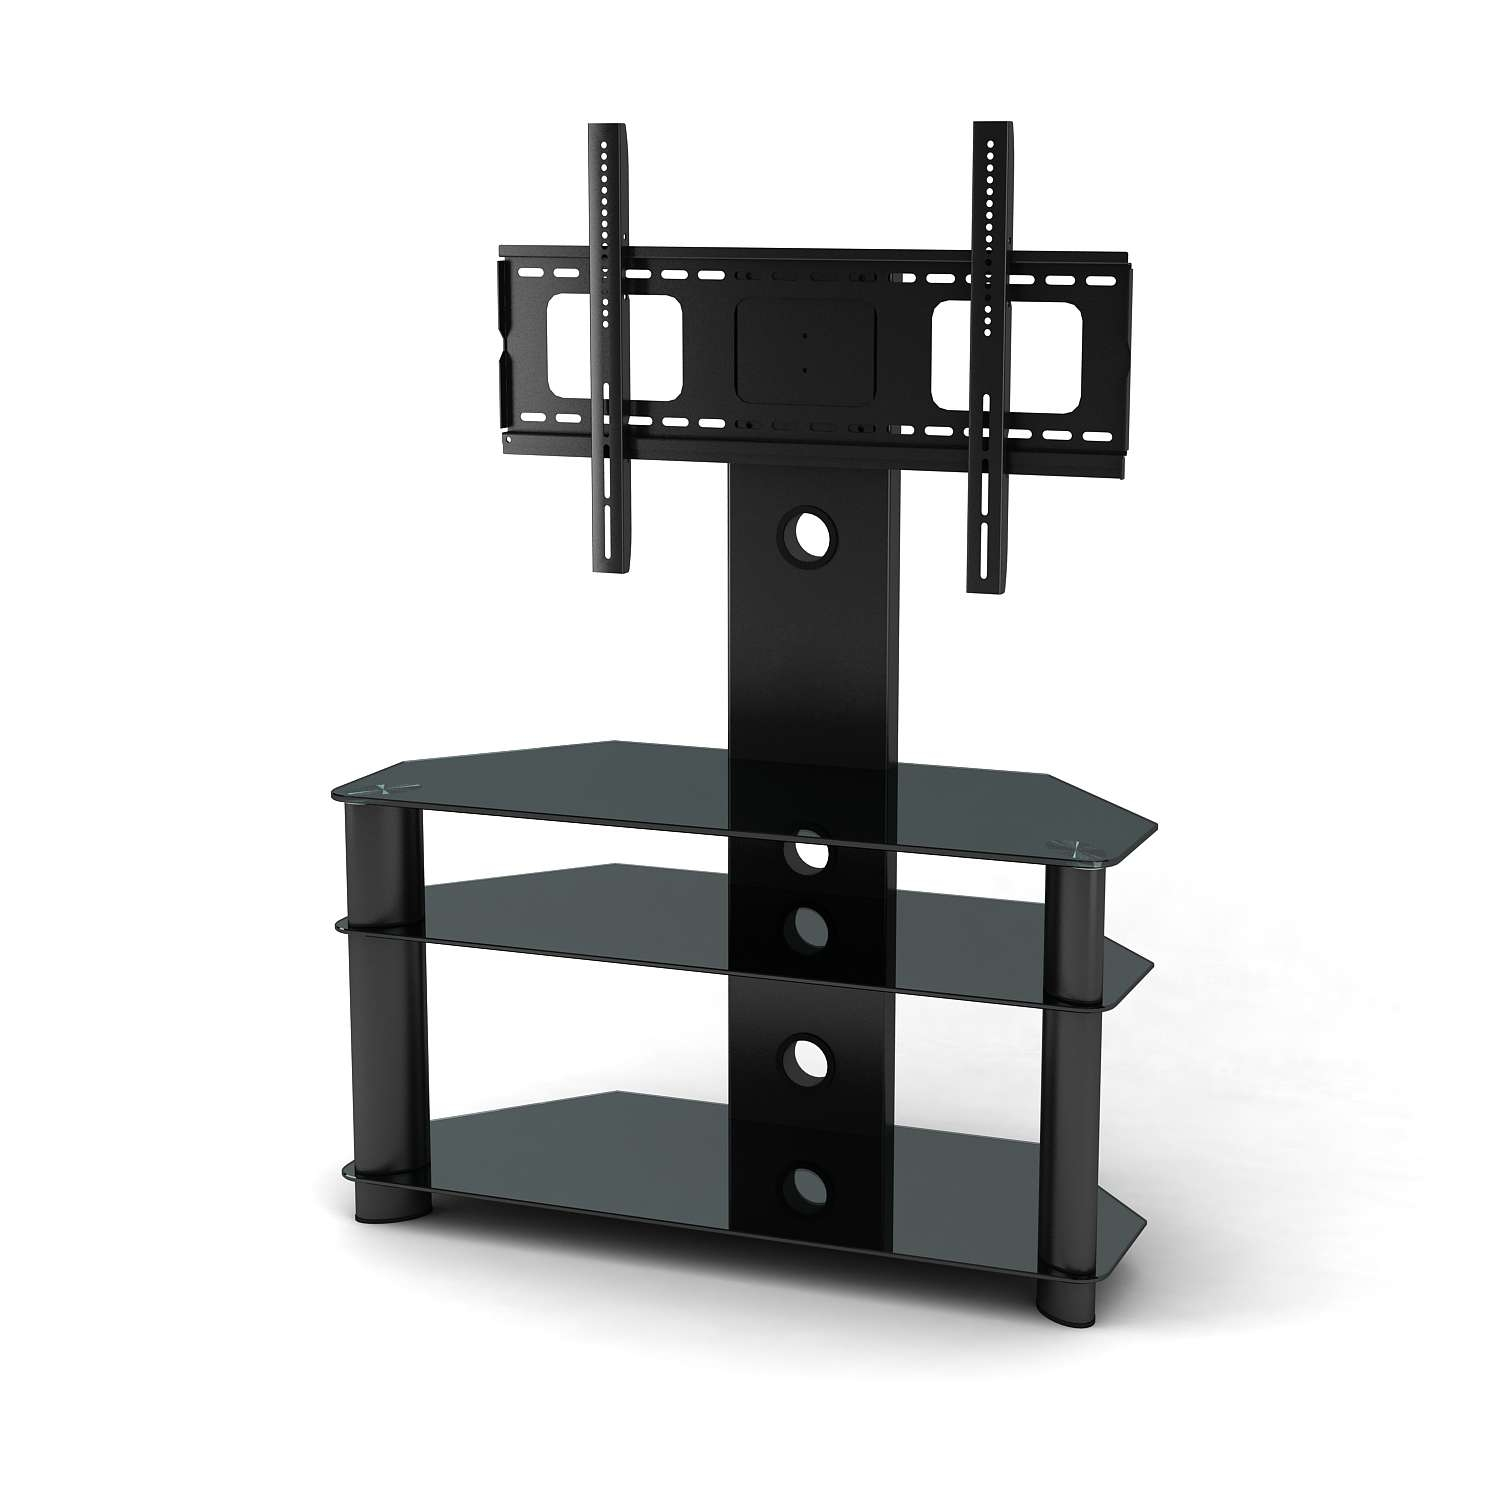 32 Inch Tv Stands For 24 Inch Led Tv Stands (View 1 of 15)